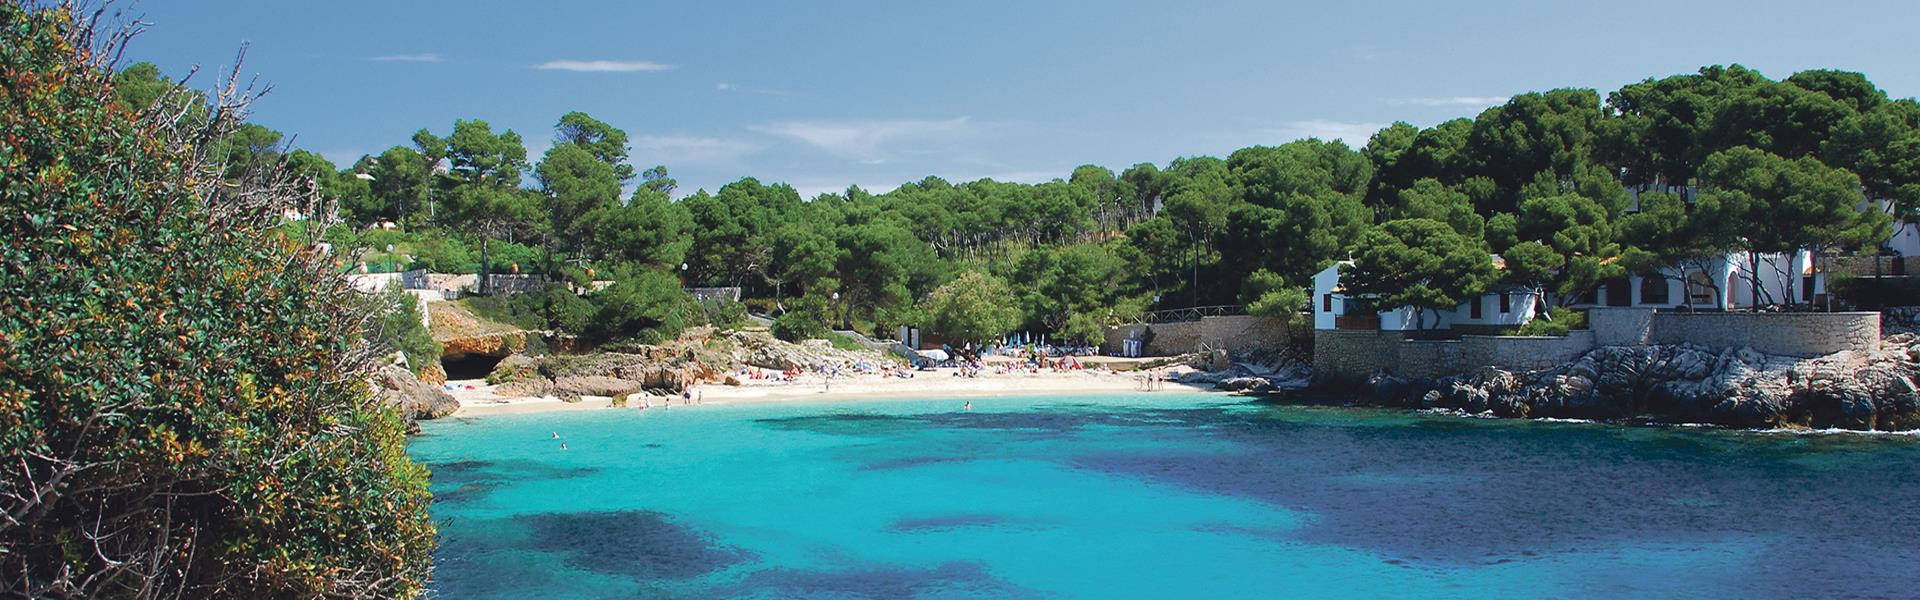 Majorca Beach Stay & Med Island Hopping